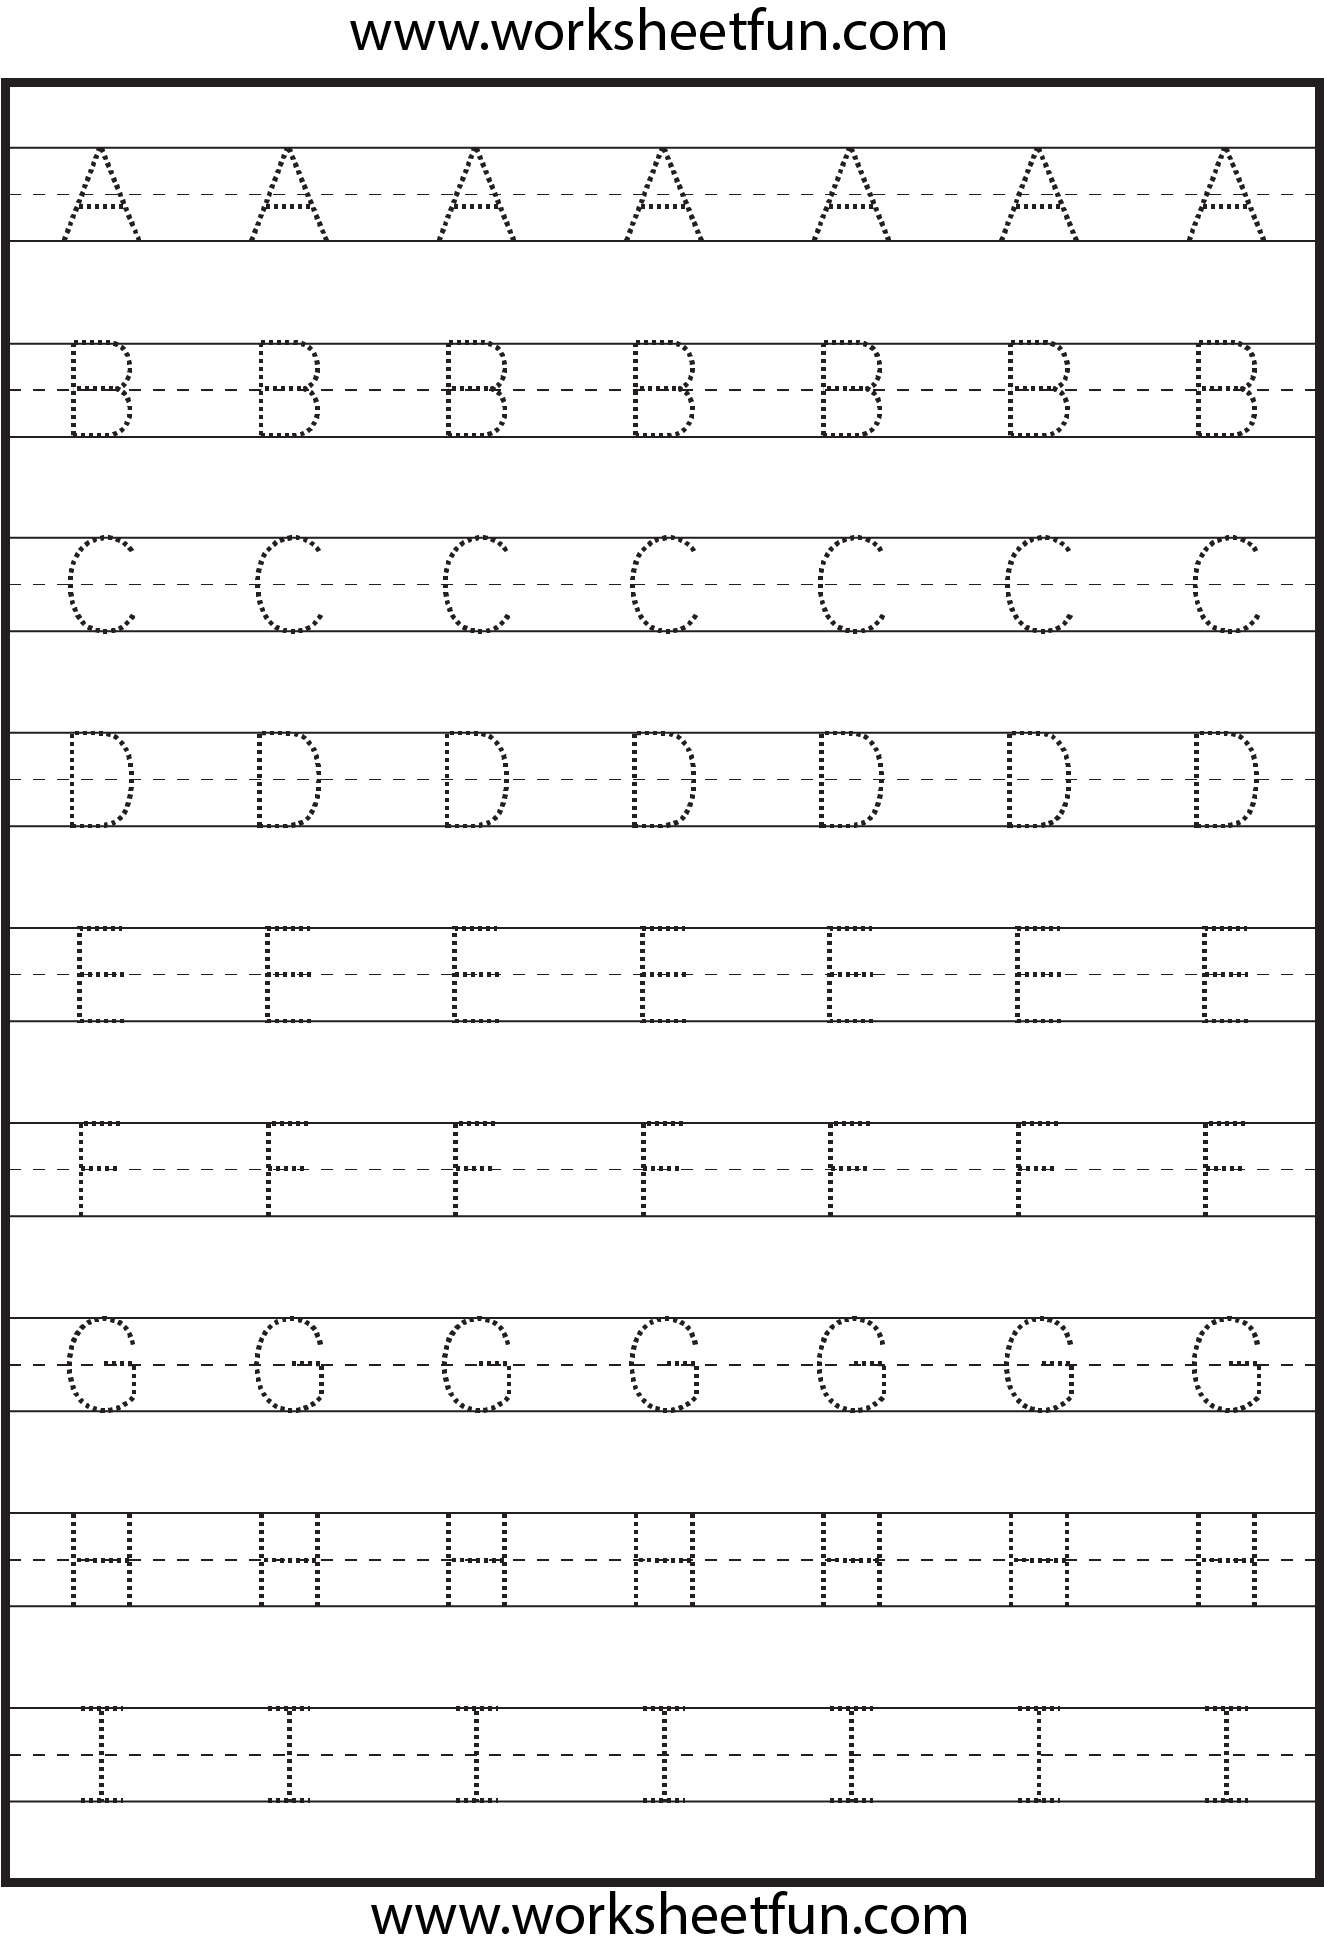 letter tracing 3 worksheets kindergarten worksheets tracing letters letter worksheets. Black Bedroom Furniture Sets. Home Design Ideas